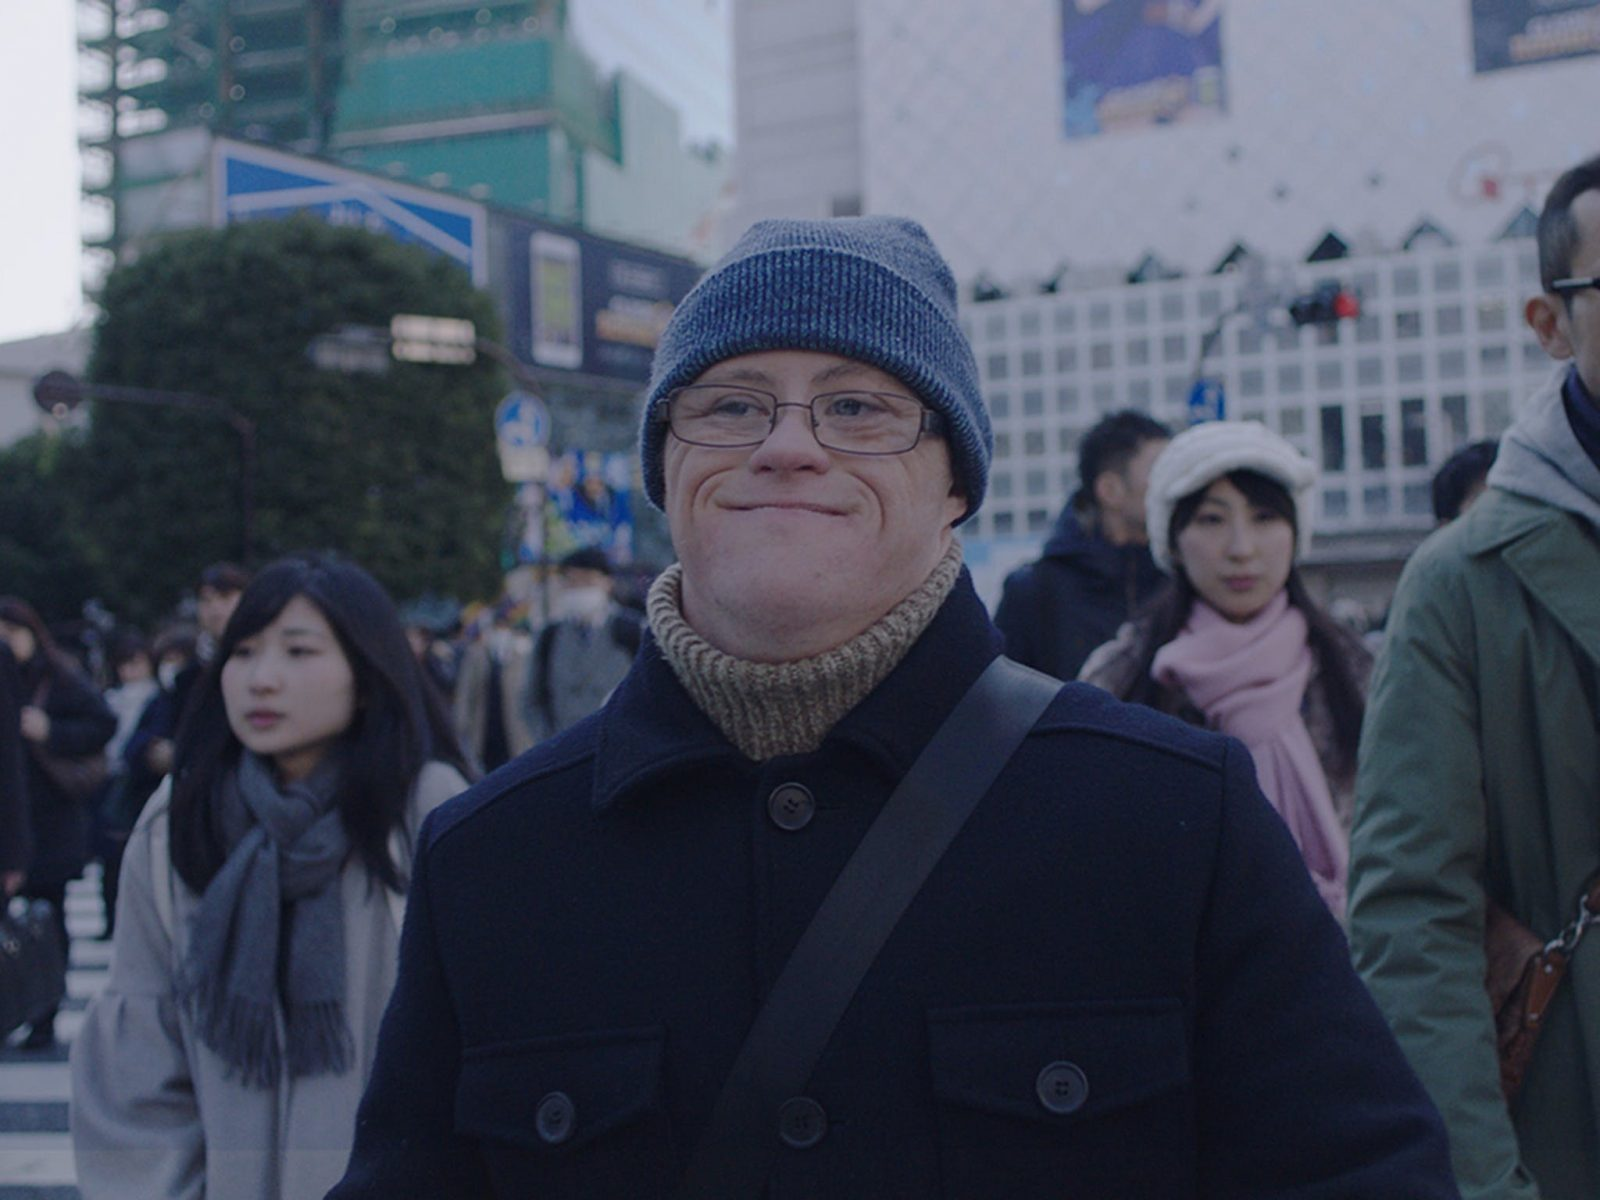 International Day of People with a Disability - Short Film Program